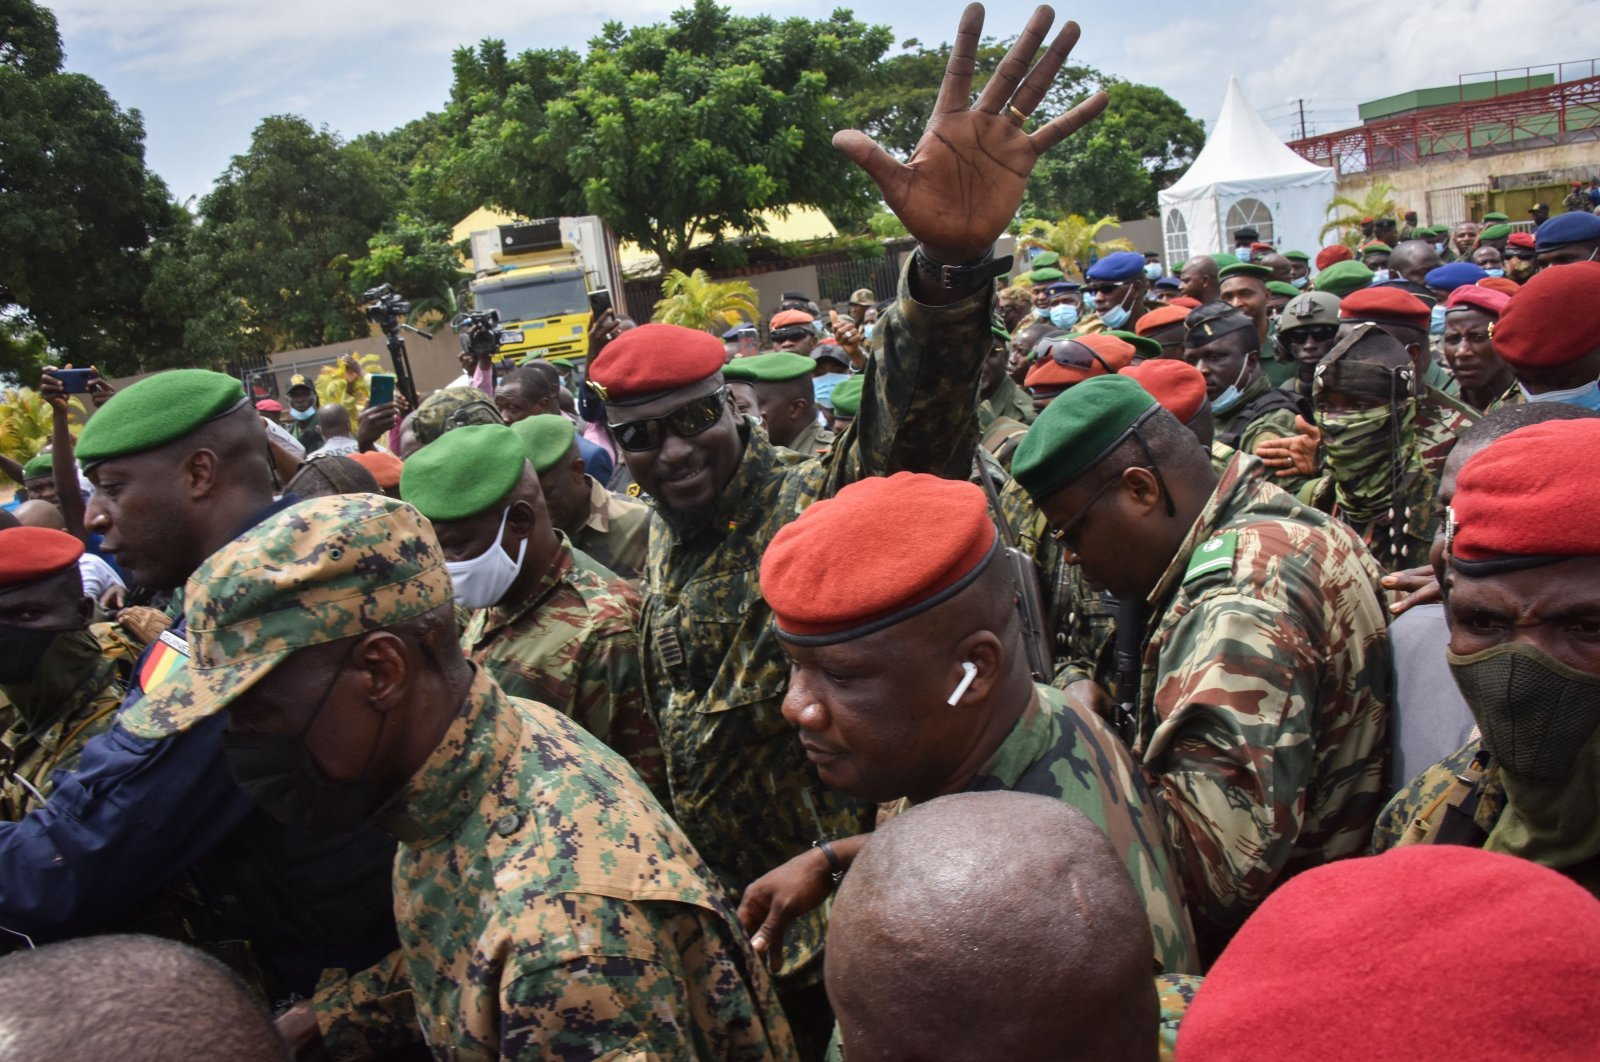 Lieutenant Colonel Mamady Doumbouya, head of the Army's special forces and coup leader, waves to the crowd as he arrives at the Palace of the People in Conakry on Sept. 6, 2021, ahead of a meeting with the Ministers of the President of Guinea, Alpha Conde. (AFP Photo)